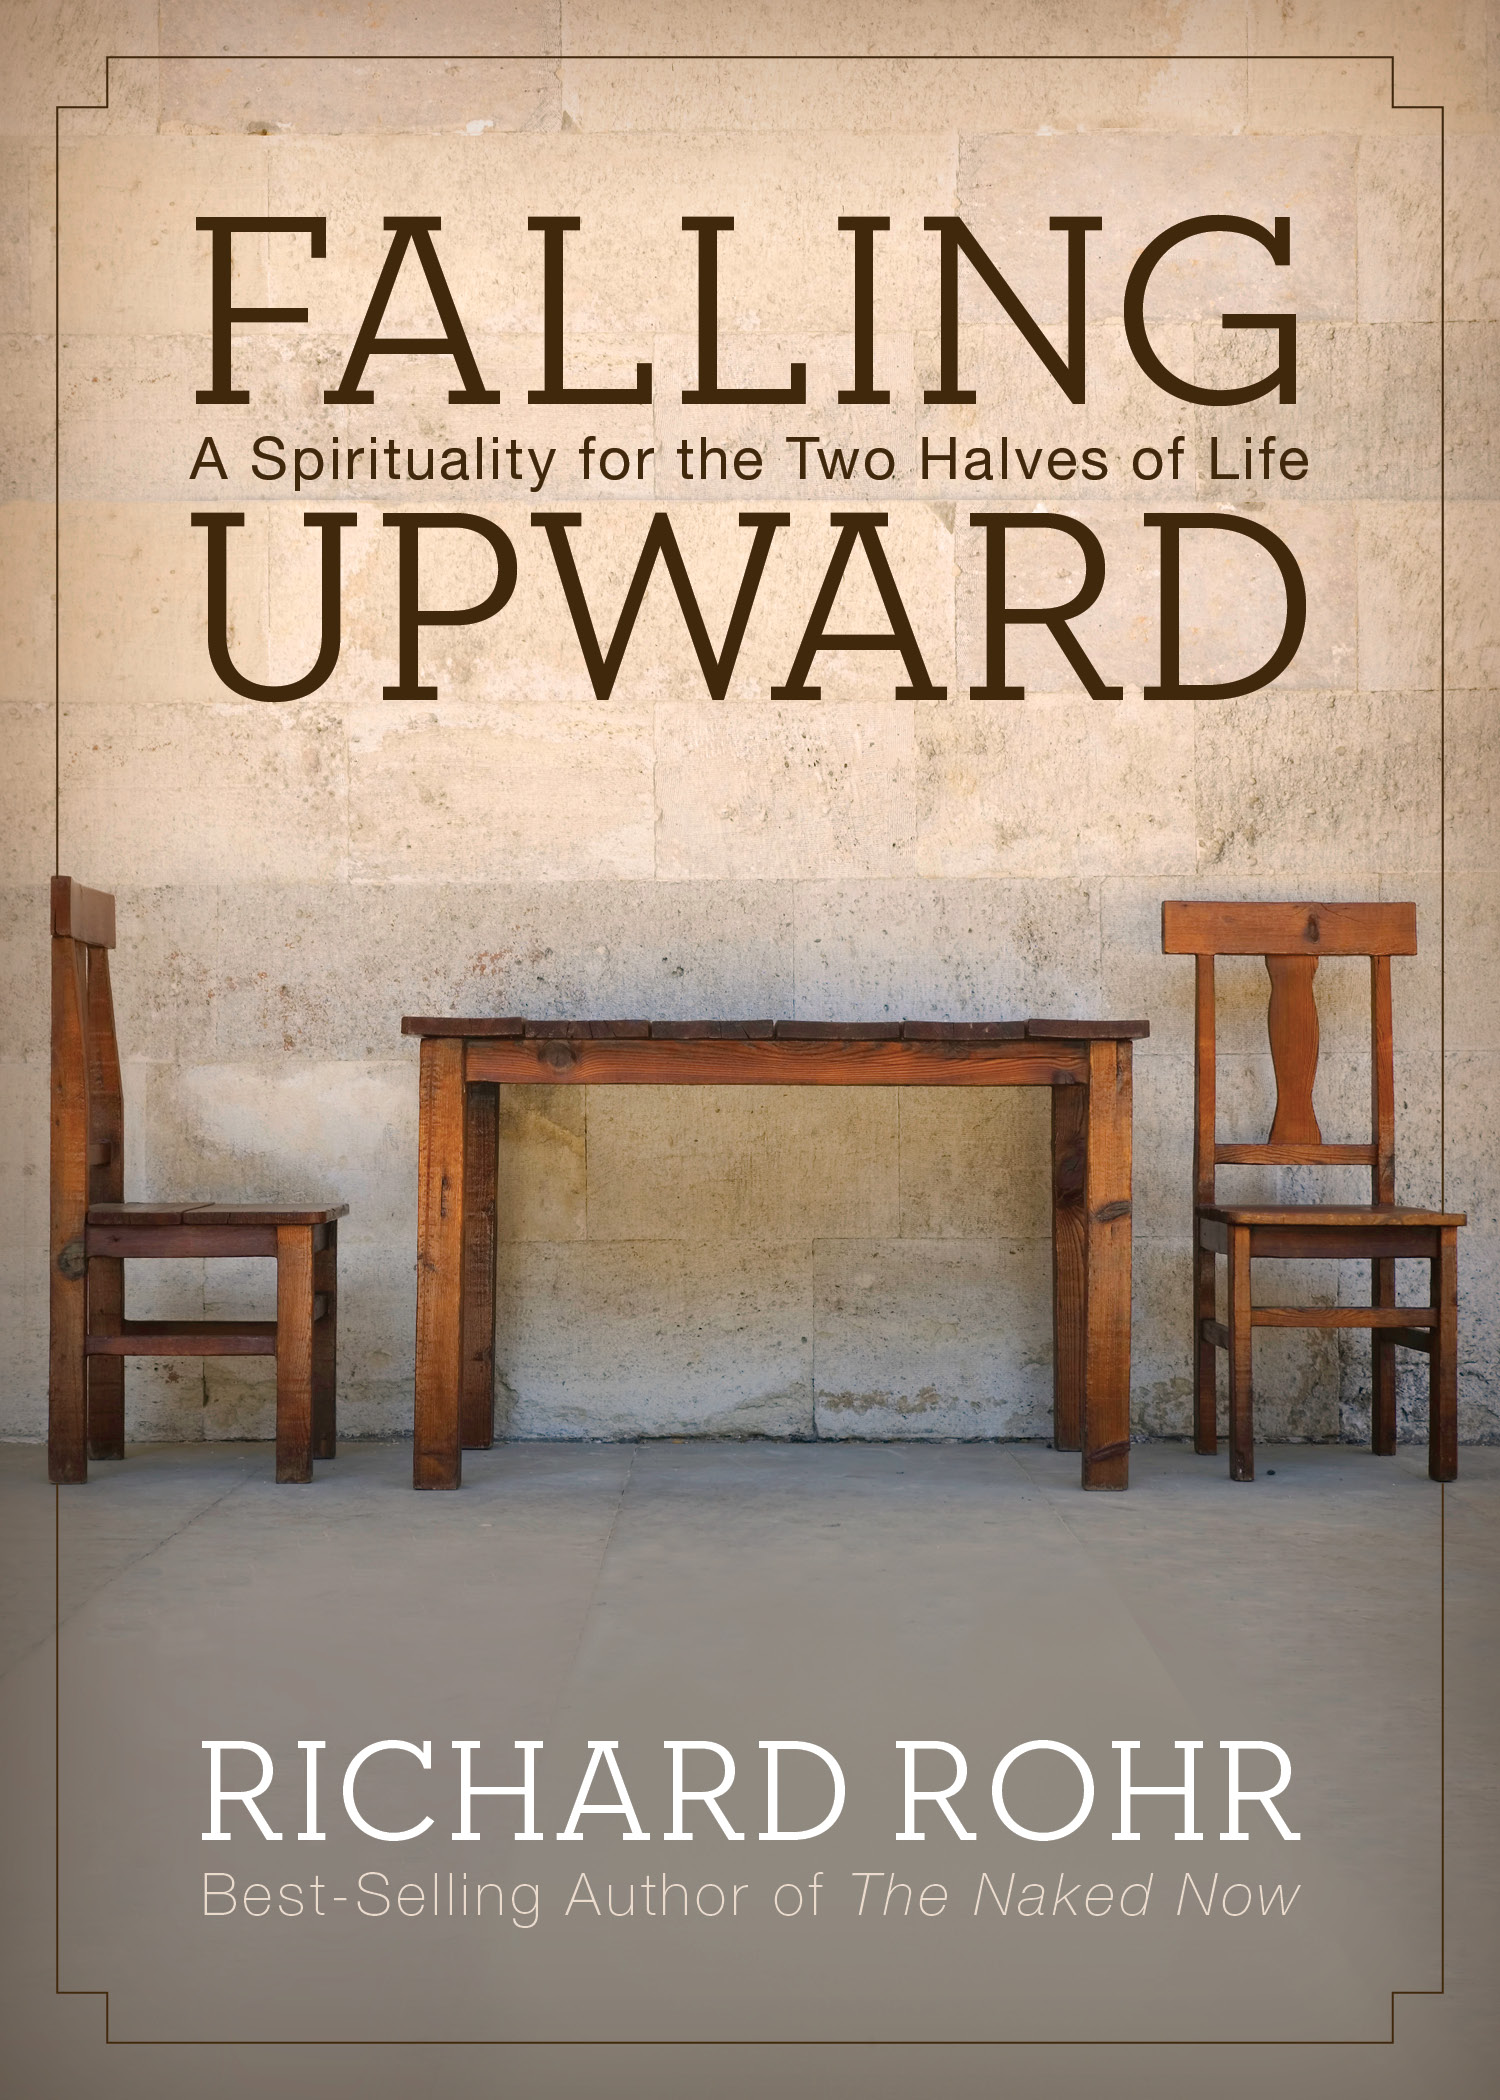 Fallingupward A Quote By Richard Rohr Recently Struck Me, From Falling  Upward: A Spirituality For The Two Halves Of Life